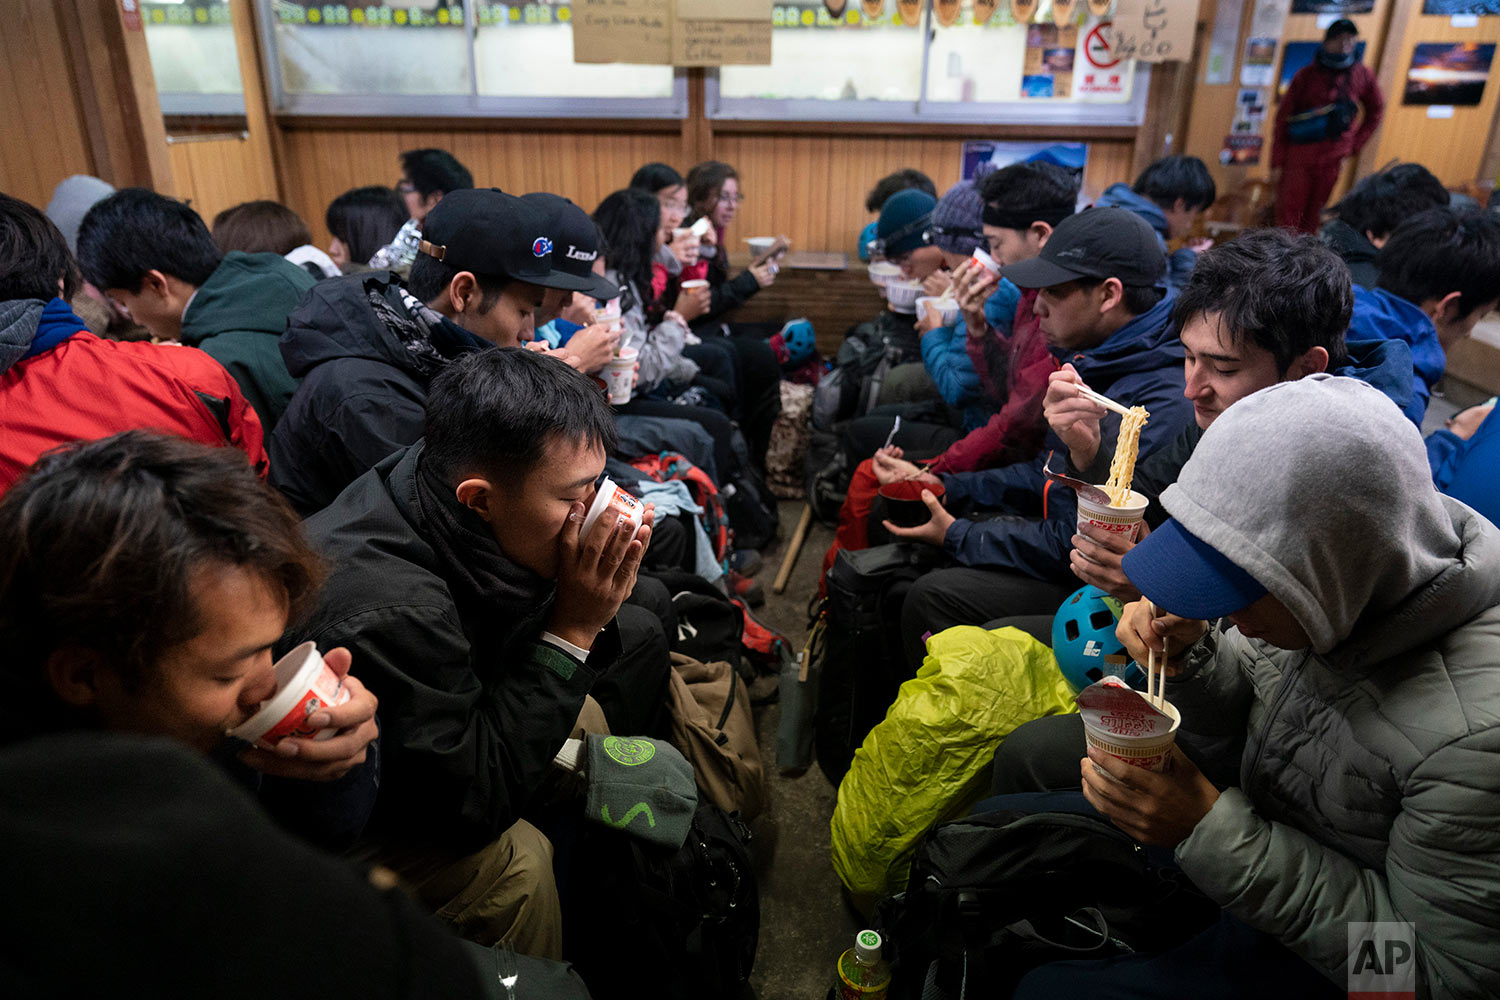 Waiting for the sunrise, climbers eat noodles in a restaurant located on the summit of Mount Fuji, Aug. 27, 2019, in Japan. (AP Photo/Jae C. Hong)